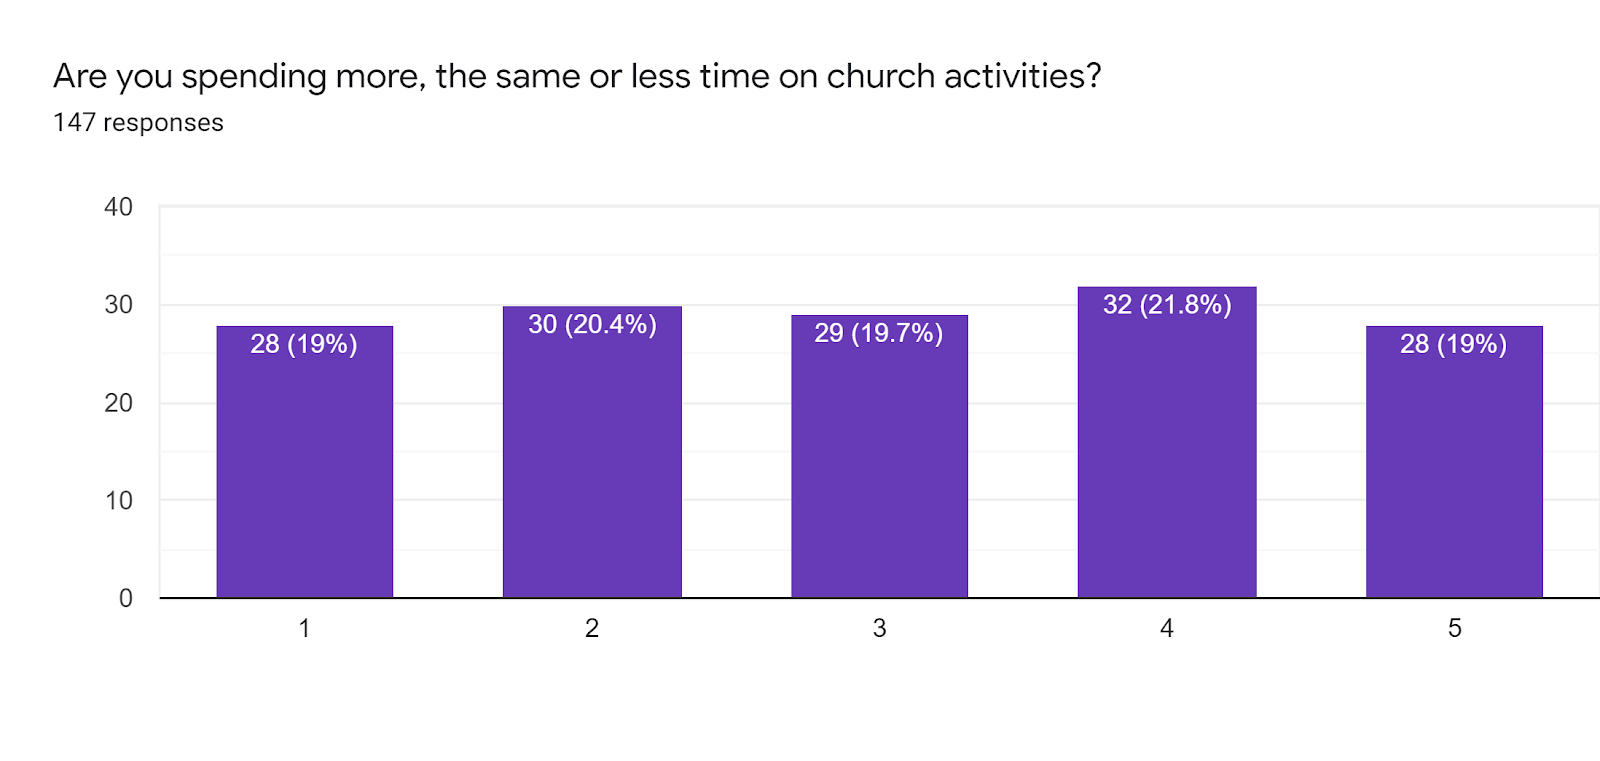 There was an even split between time spent on church activities during the covid pandemic